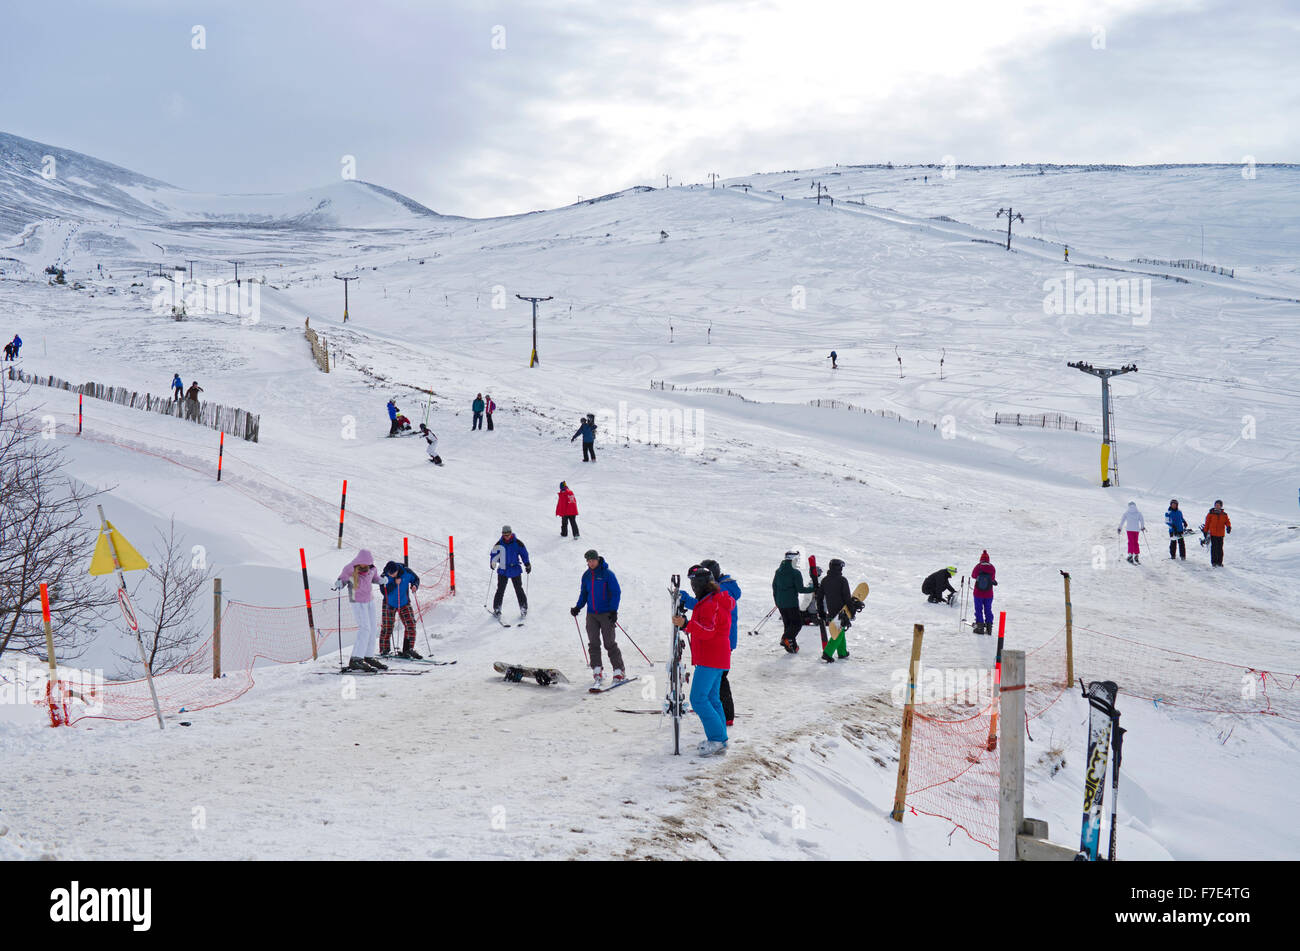 skiers and snowboarders on the lower slopes of cairngorm mountain